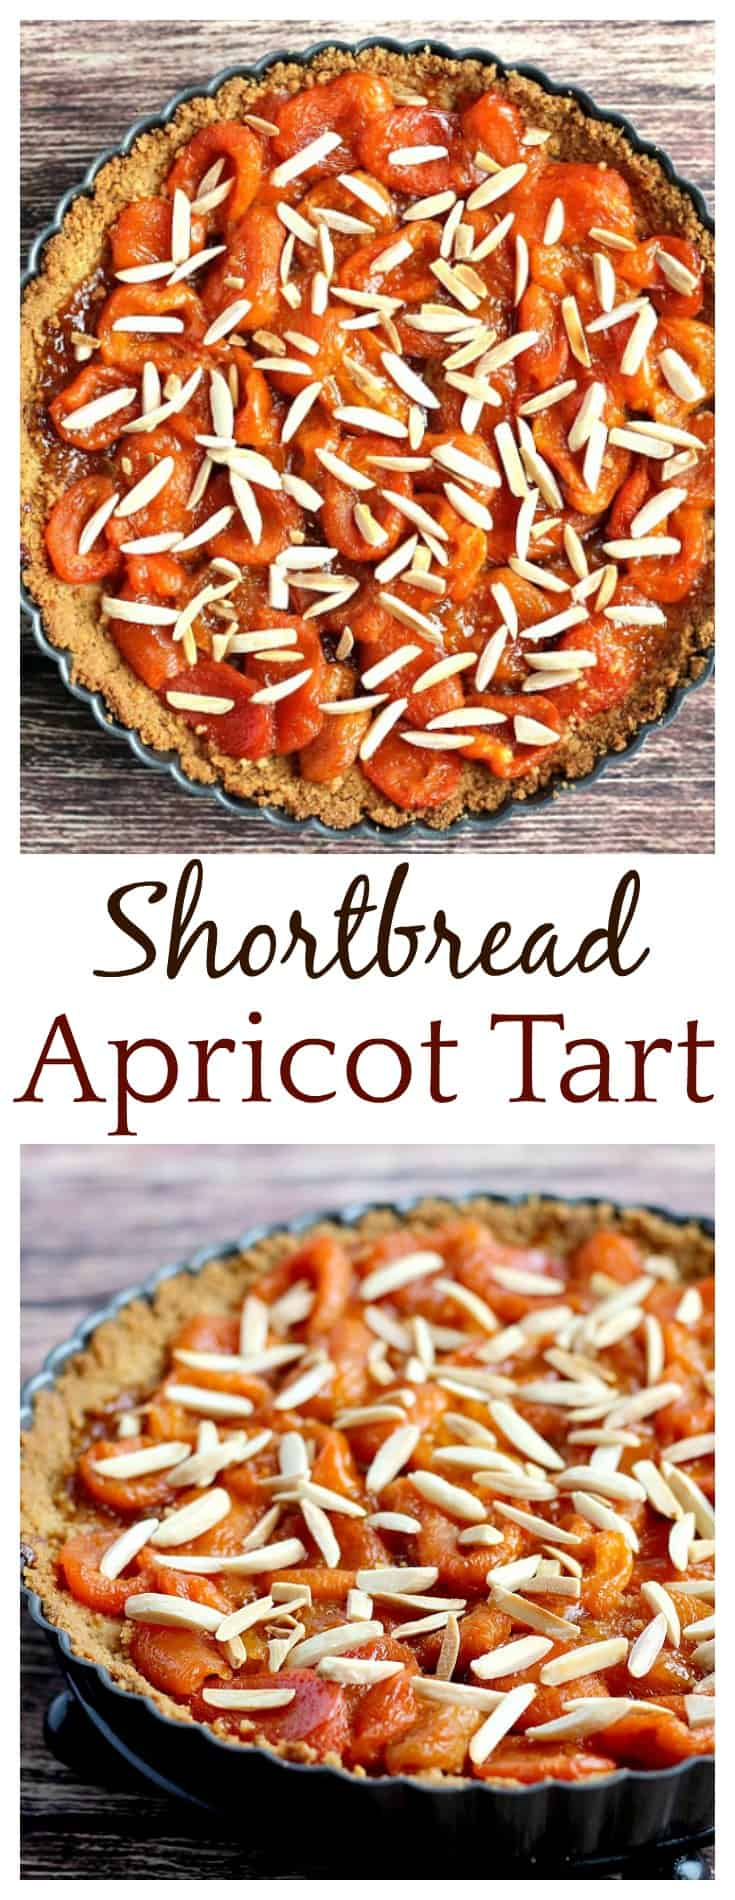 A Shortbread Apricot Tart is the perfect way to enjoy this delicious fruit! This recipe can be made with either dried or fresh apricots so that it can enjoyed year round!